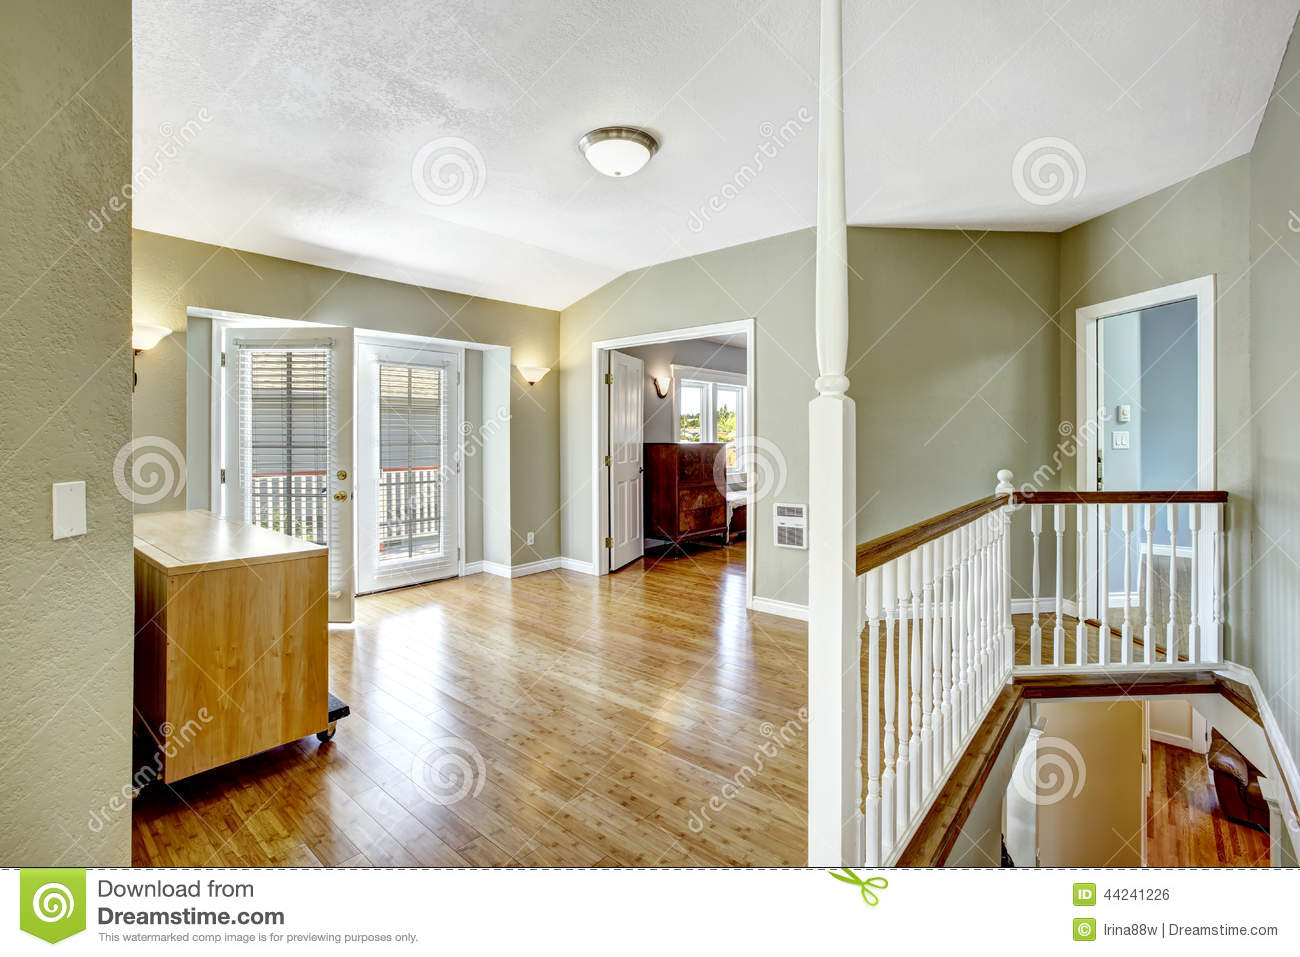 Upstairs Room With Walkout Deck In Empty House Stock Photo Image 44241226